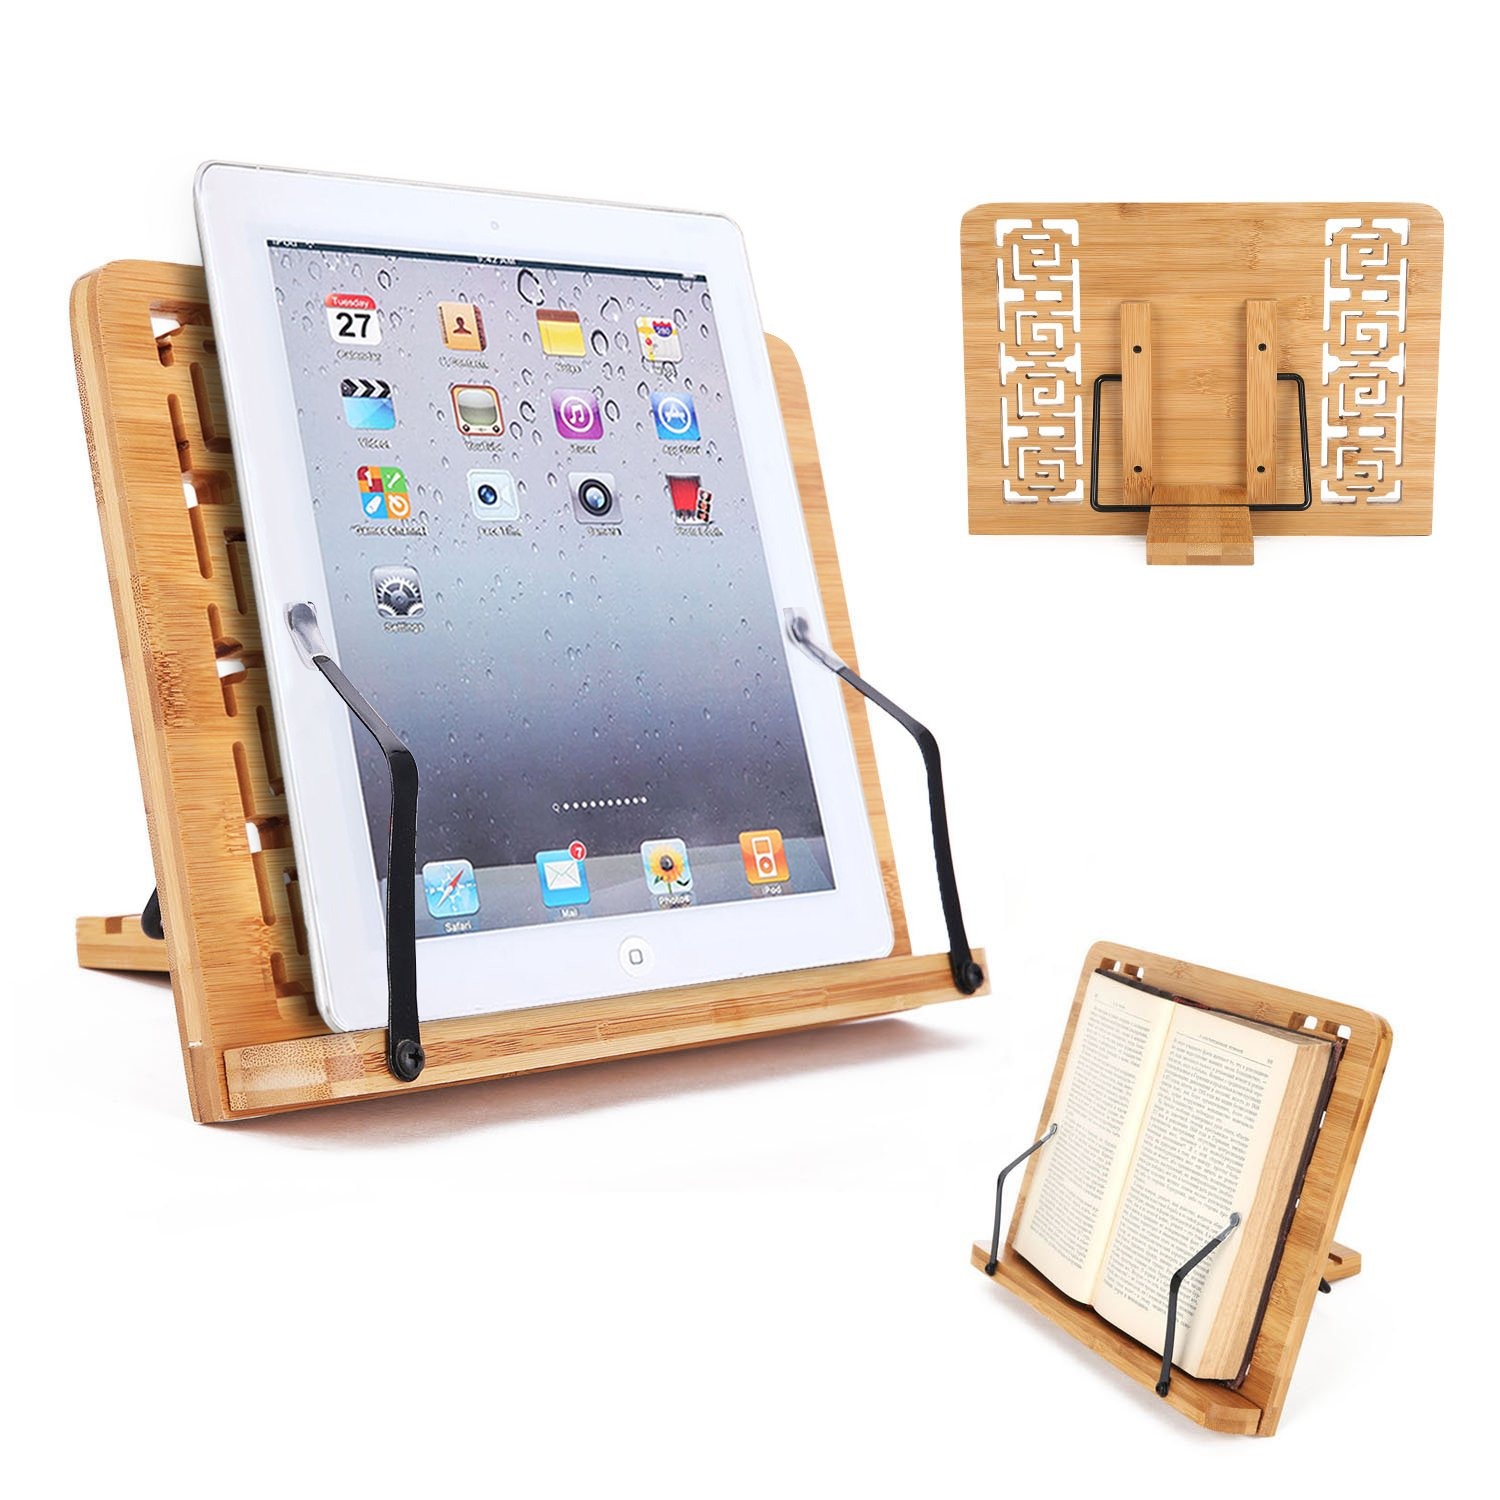 Desktop Book Stand Cookbook Holder Book Rest Reading Paper Typing Stand Tablet Foldable Tray Page Clips Portable Bamboo Book Holder for Desk iPad Laptop Textbook Recipe Document Music (Hollow)